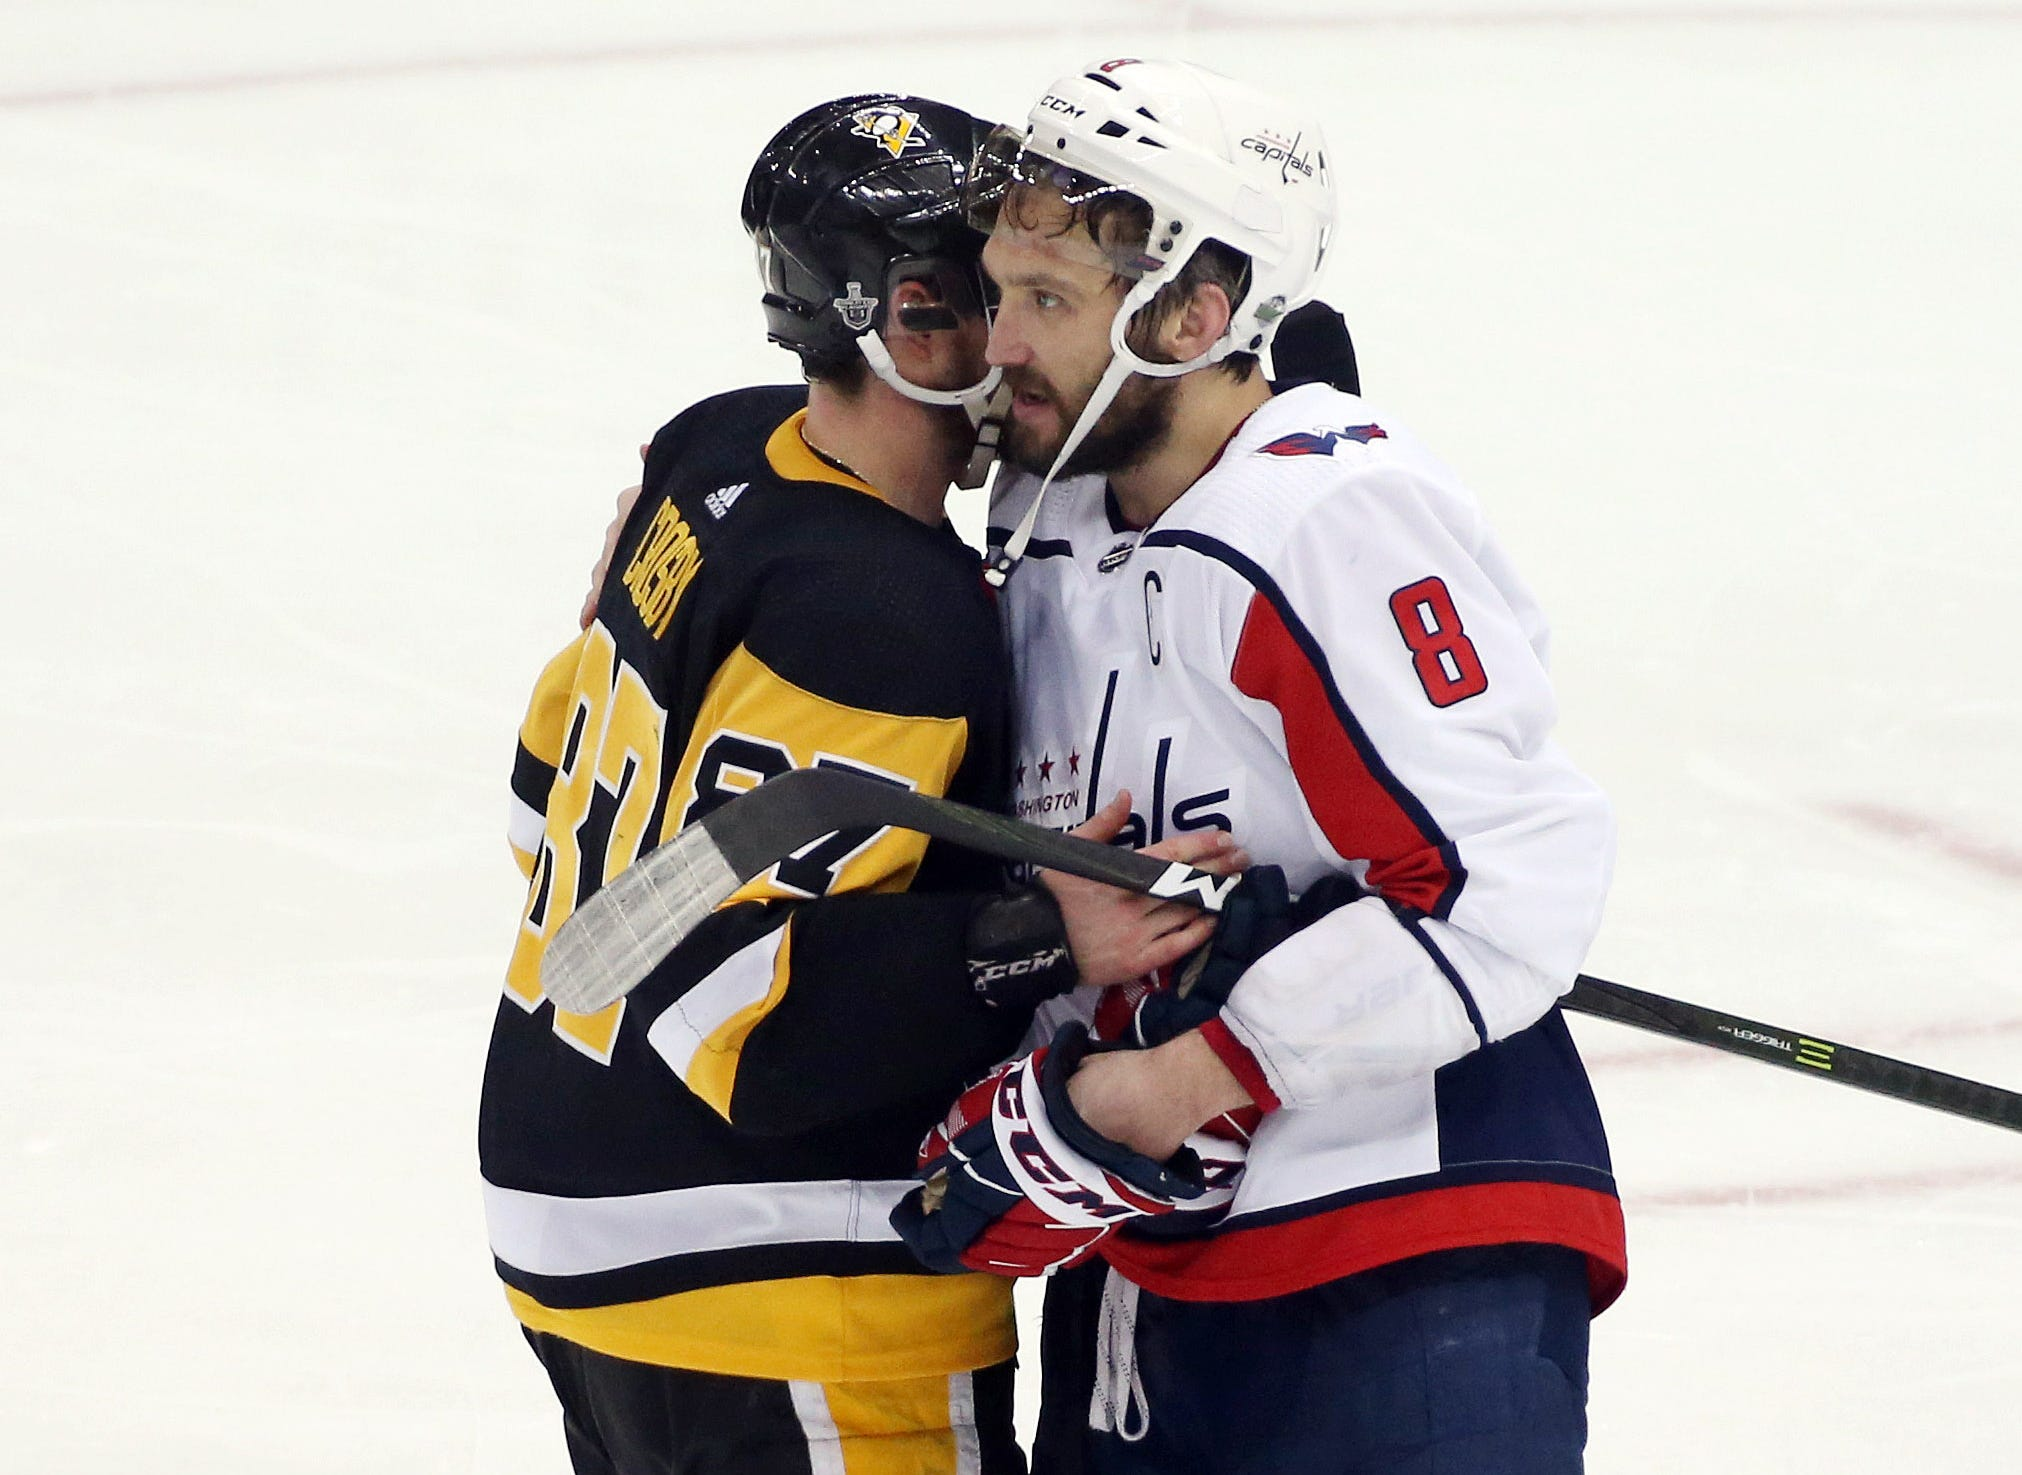 Pittsburgh Penguins center Sidney Crosby, left, and Washington Capitals left wing Alex Ovechkin embrace after game six of the second round of the 2018 Stanley Cup Playoffs at PPG PAINTS Arena in Pittsburgh. The Capitals won 2-1 in overtime to win the